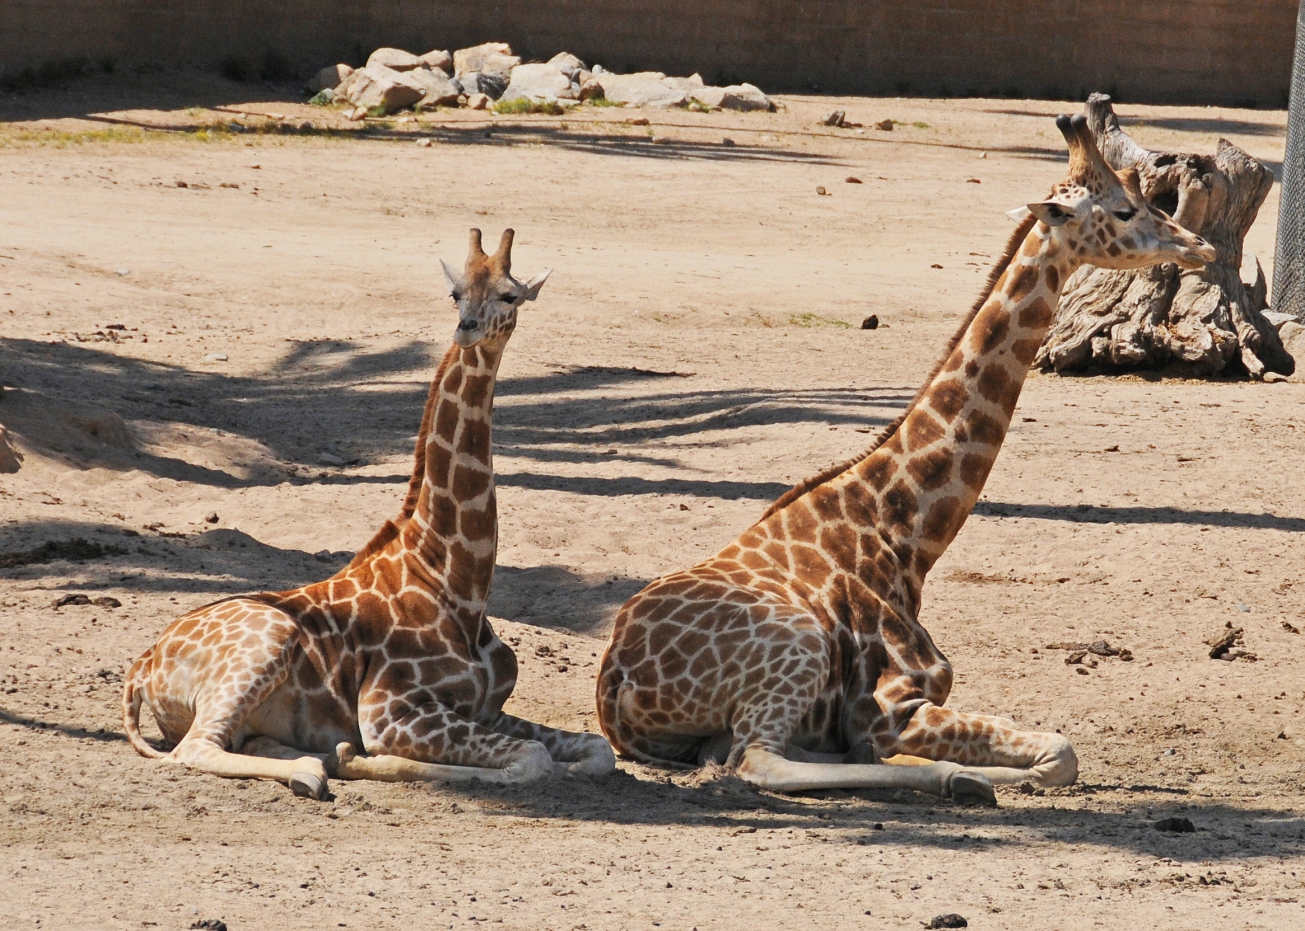 Mom and Baby Giraffes - San Diego Safari Park